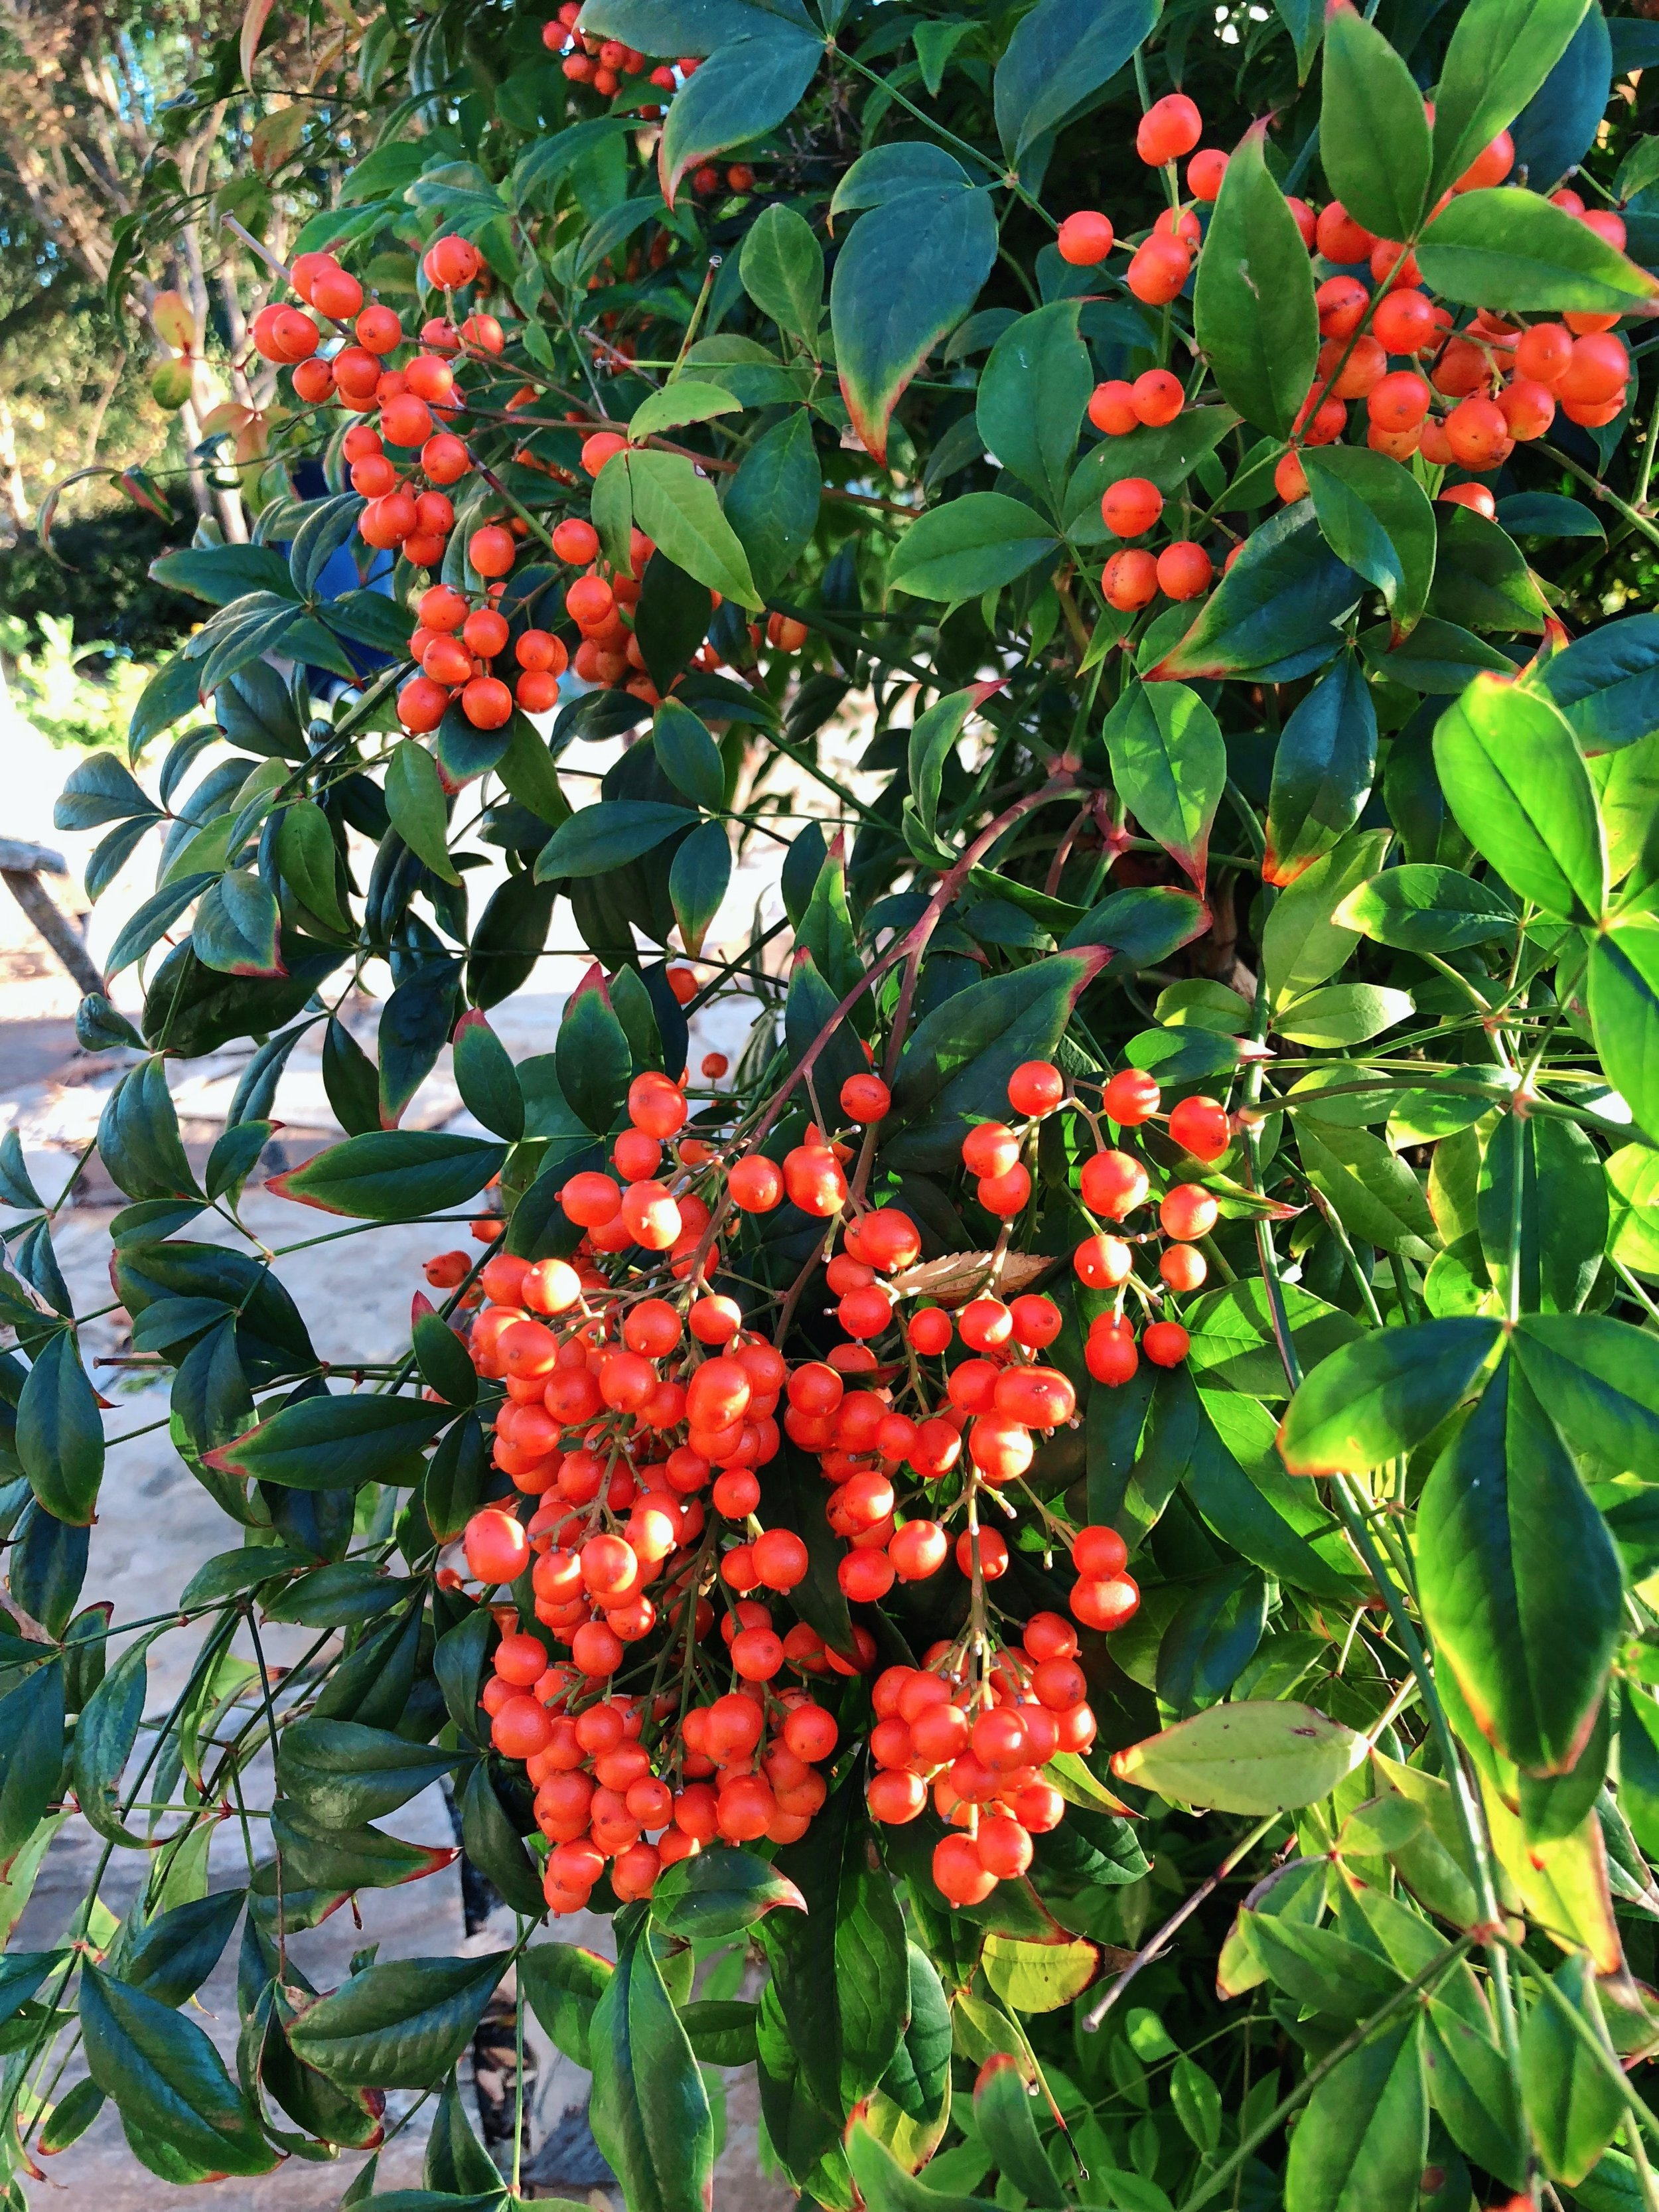 Nandina and many other shrubs add bright red berries to the landscape during the fall.